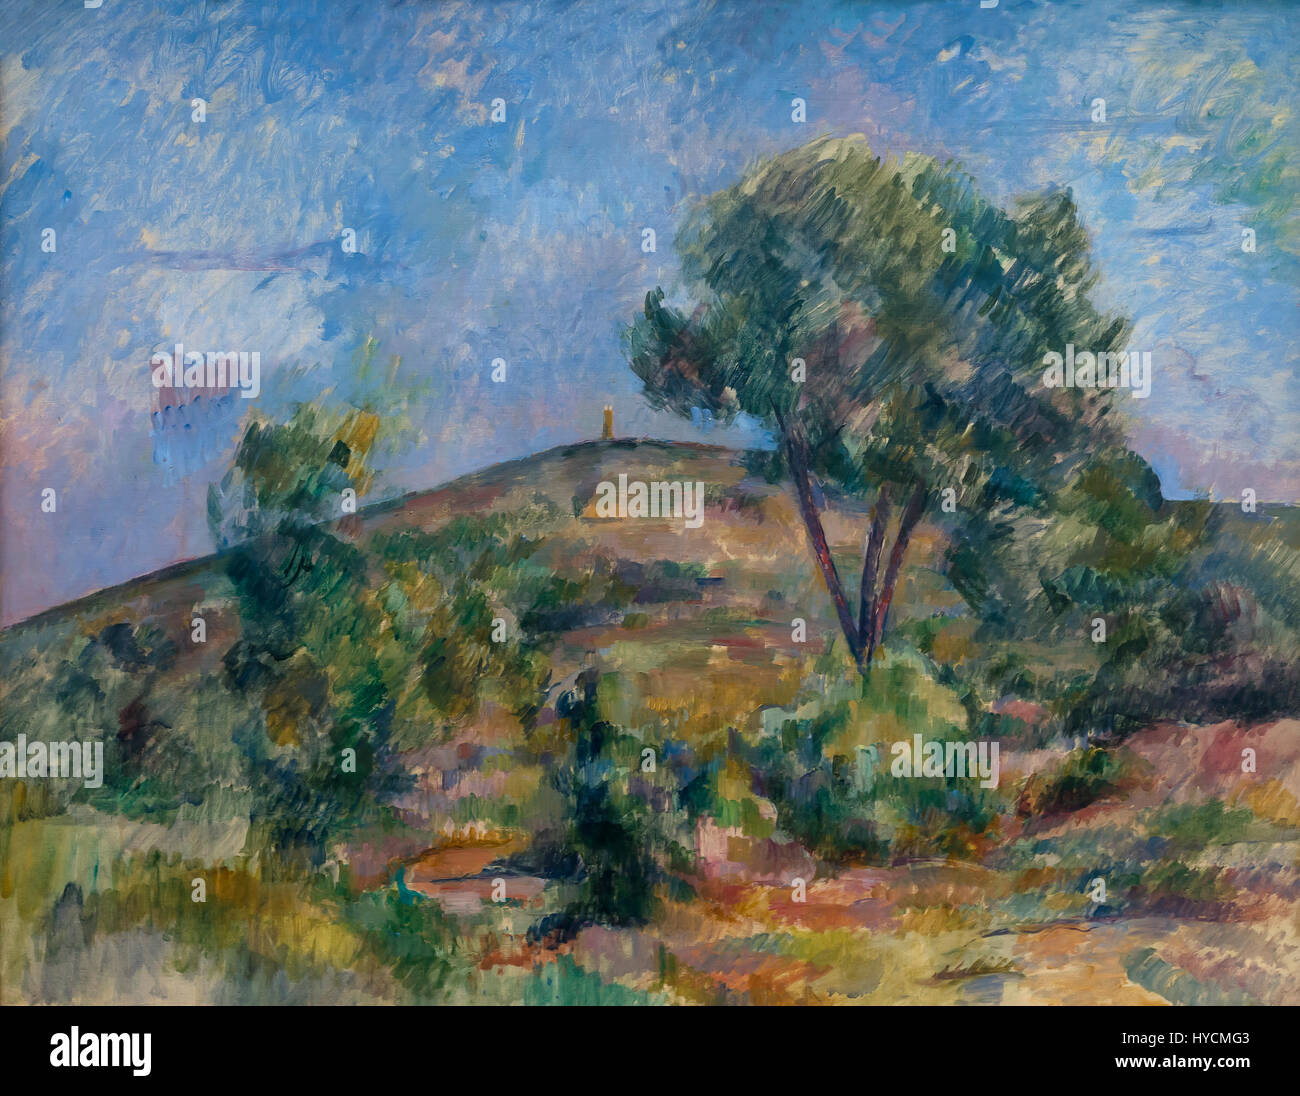 Landscape near Aix with the Tour de Cesar, by Paul Cezanne, 1895, Boijmans van Beuningen Museum, Rotterdam, Netherlands, - Stock Image